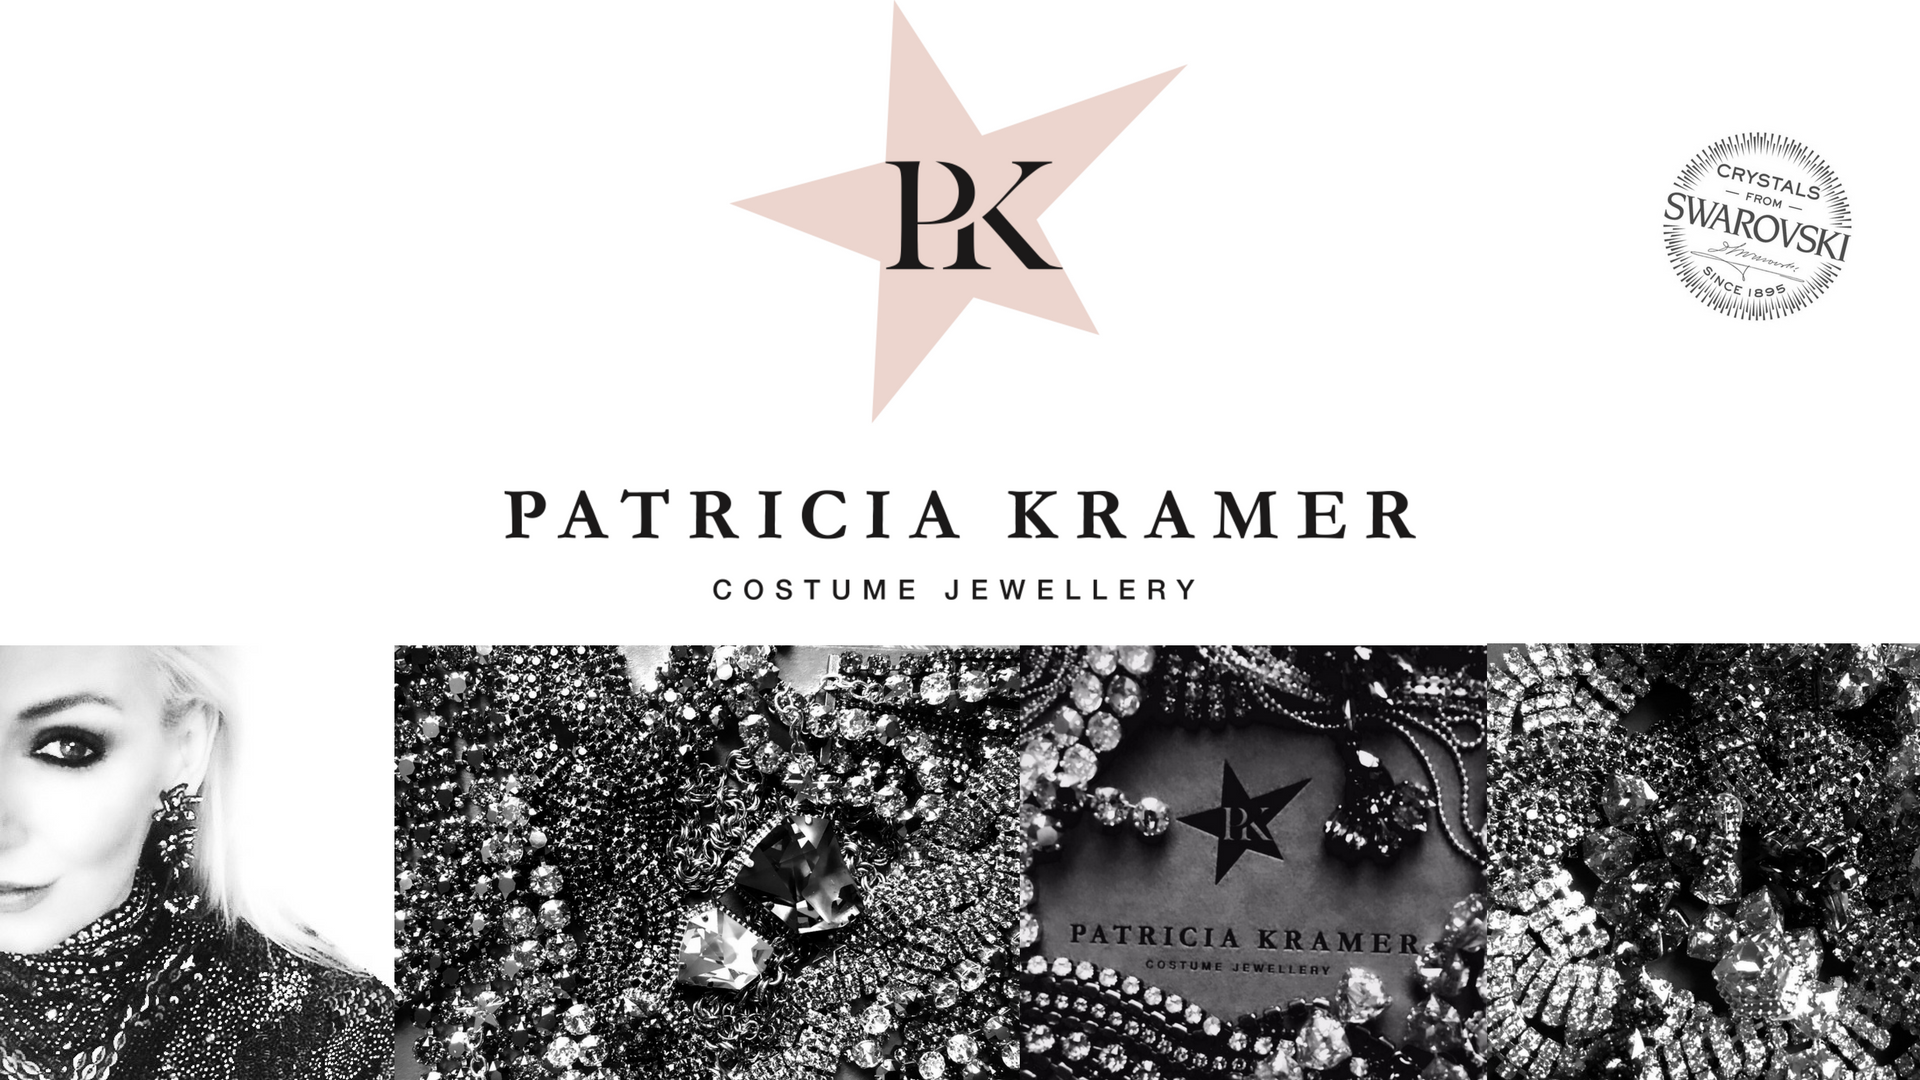 Patricia Kramer – Luxury Costume Jewellery